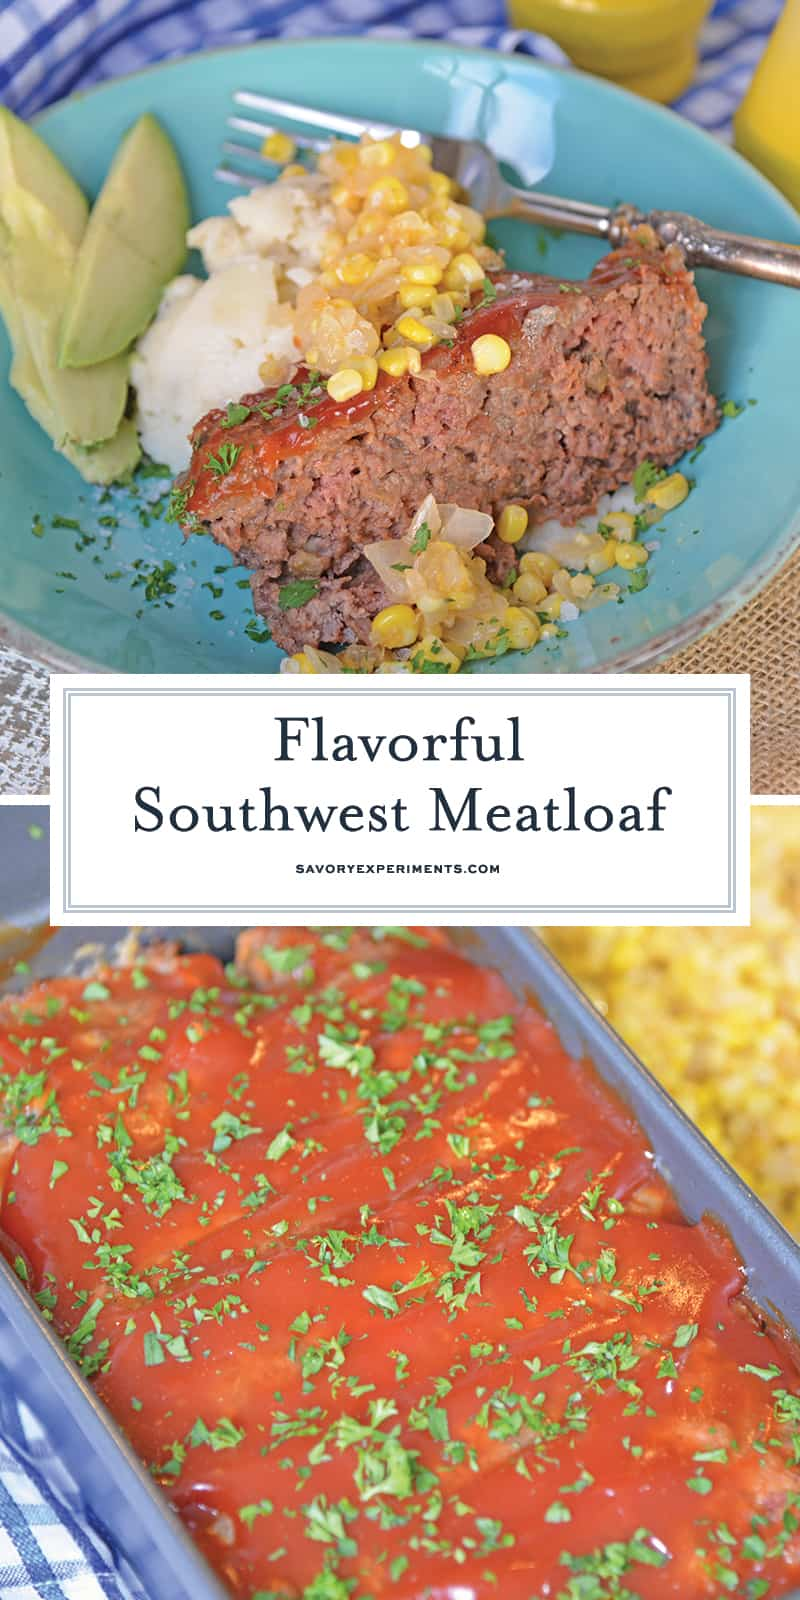 Southwest Meatloaf is a classic meatloaf recipe with a southwestern spin. Crushed tortilla chips and bottled salsa give this easy meatloaf a zesty edge. #meatloafrecipe www.savoryexperiments.com